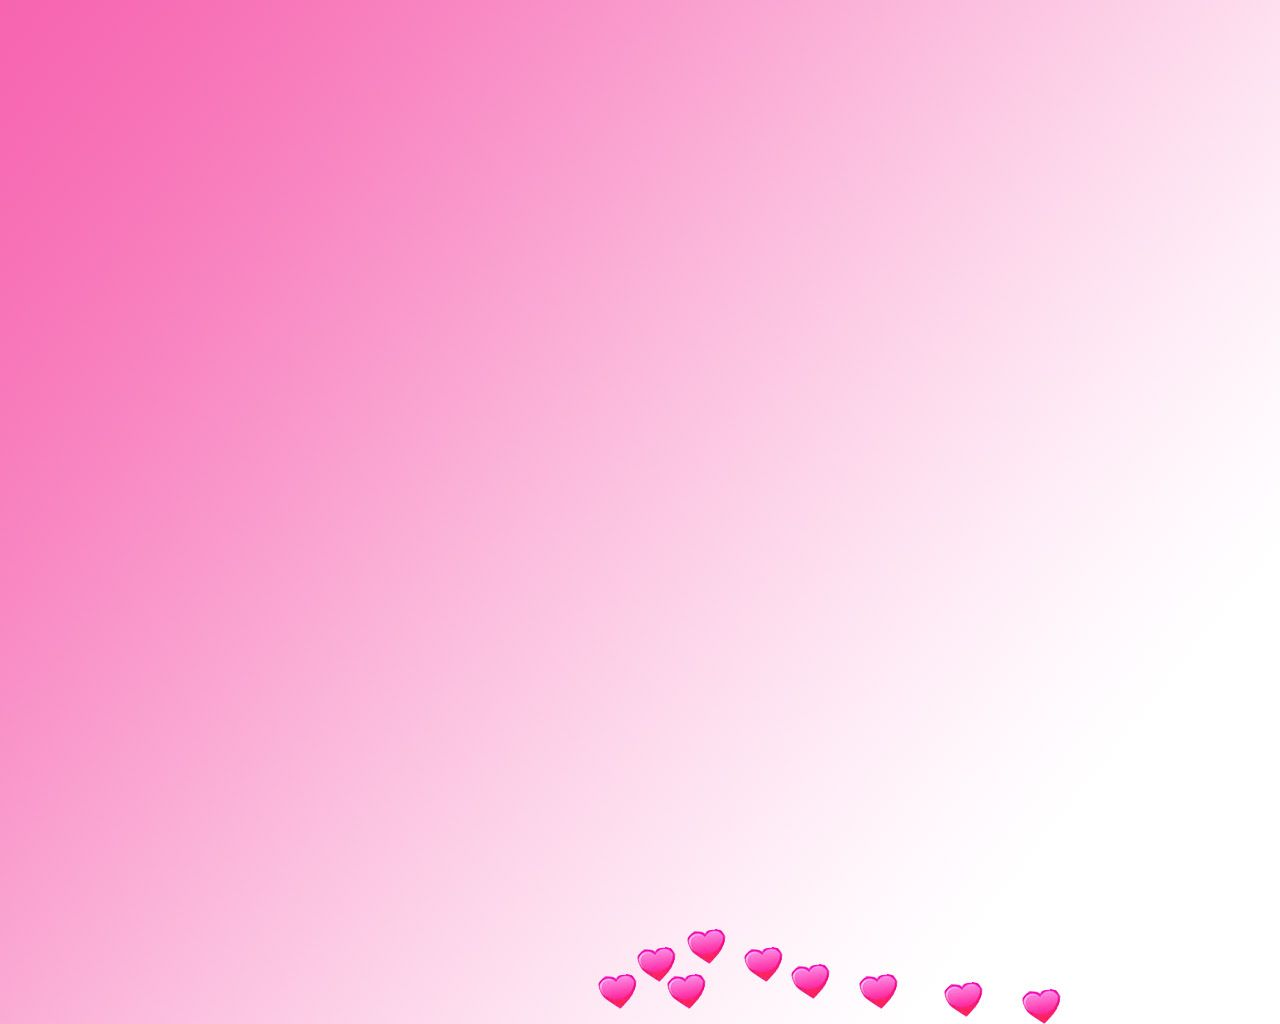 Pretty Pink Backgrounds girly wallpapers , wallpapers , pink hearts wallpapers { Pink Love ...